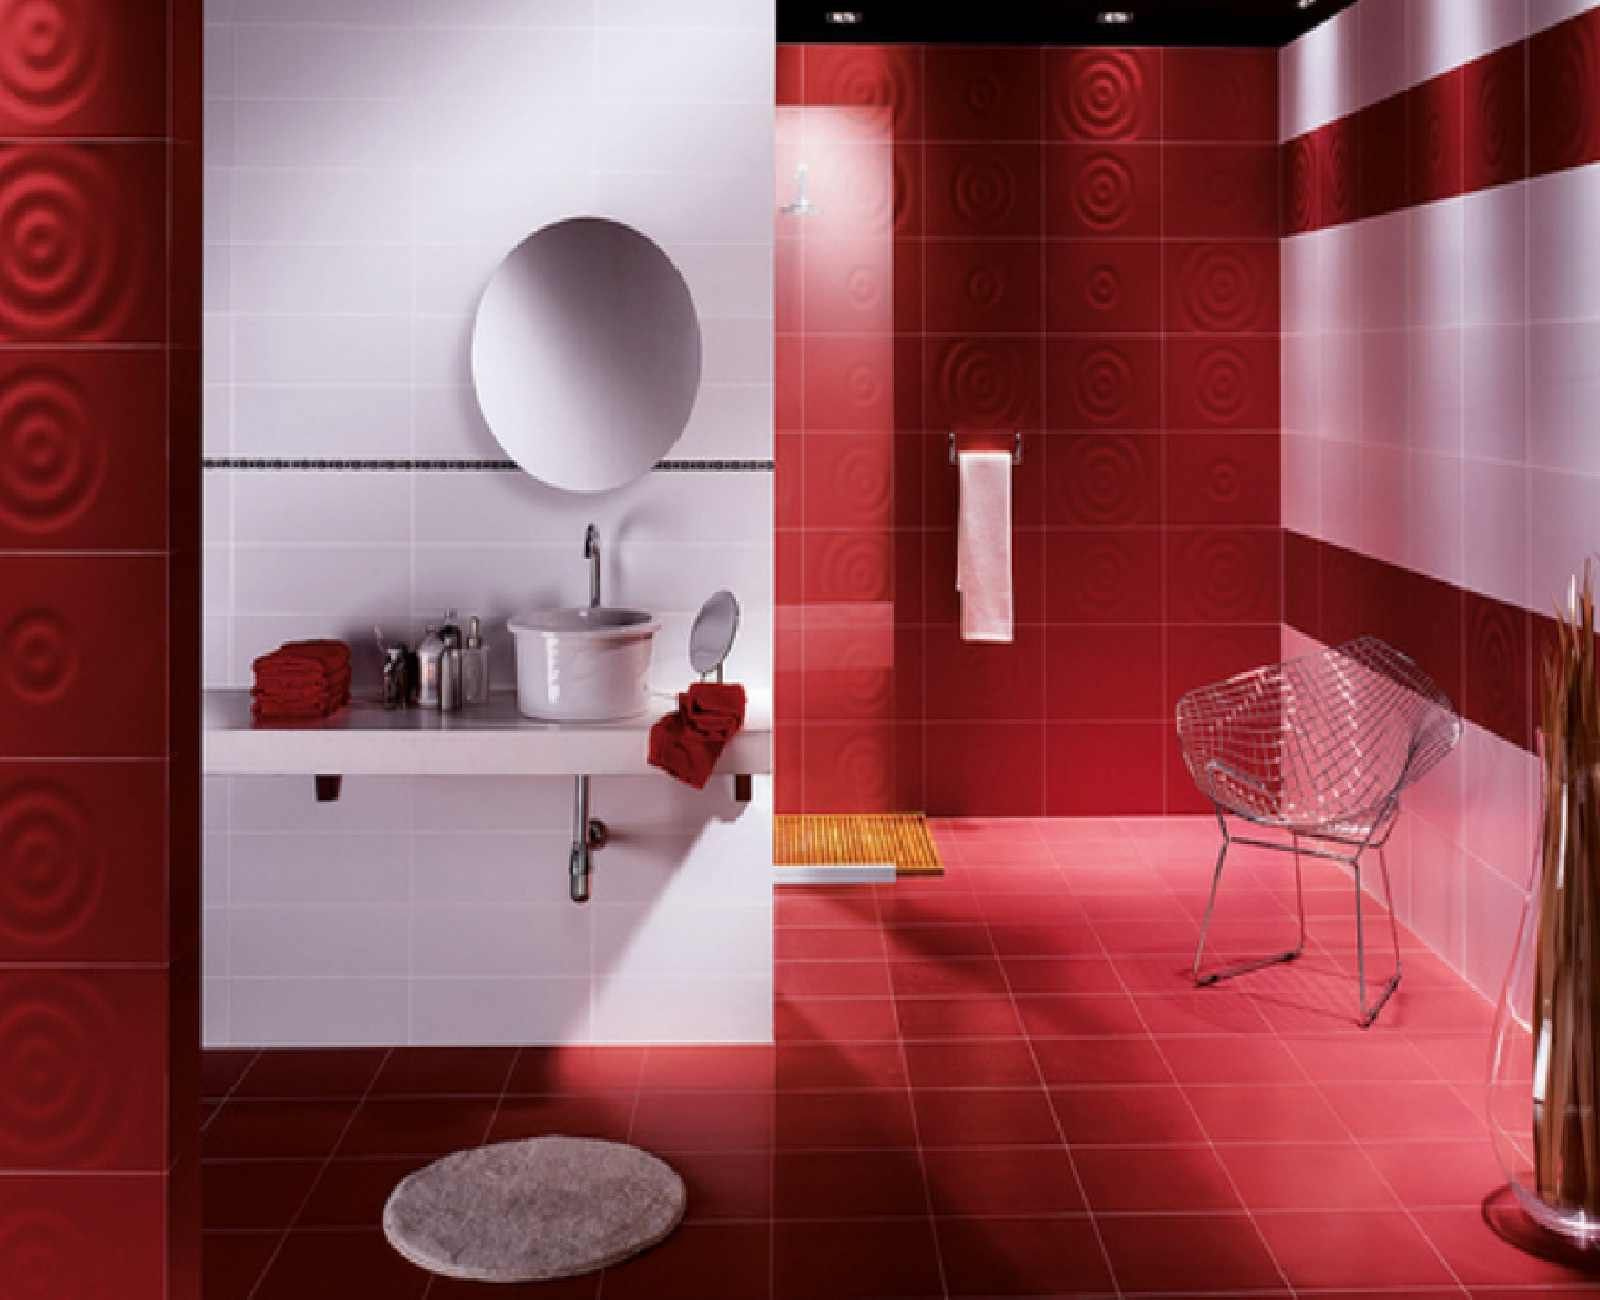 Wall Tile Decorating Ideas Red Bathroom Decorating Ideas 7  Httproomdecoratingideas